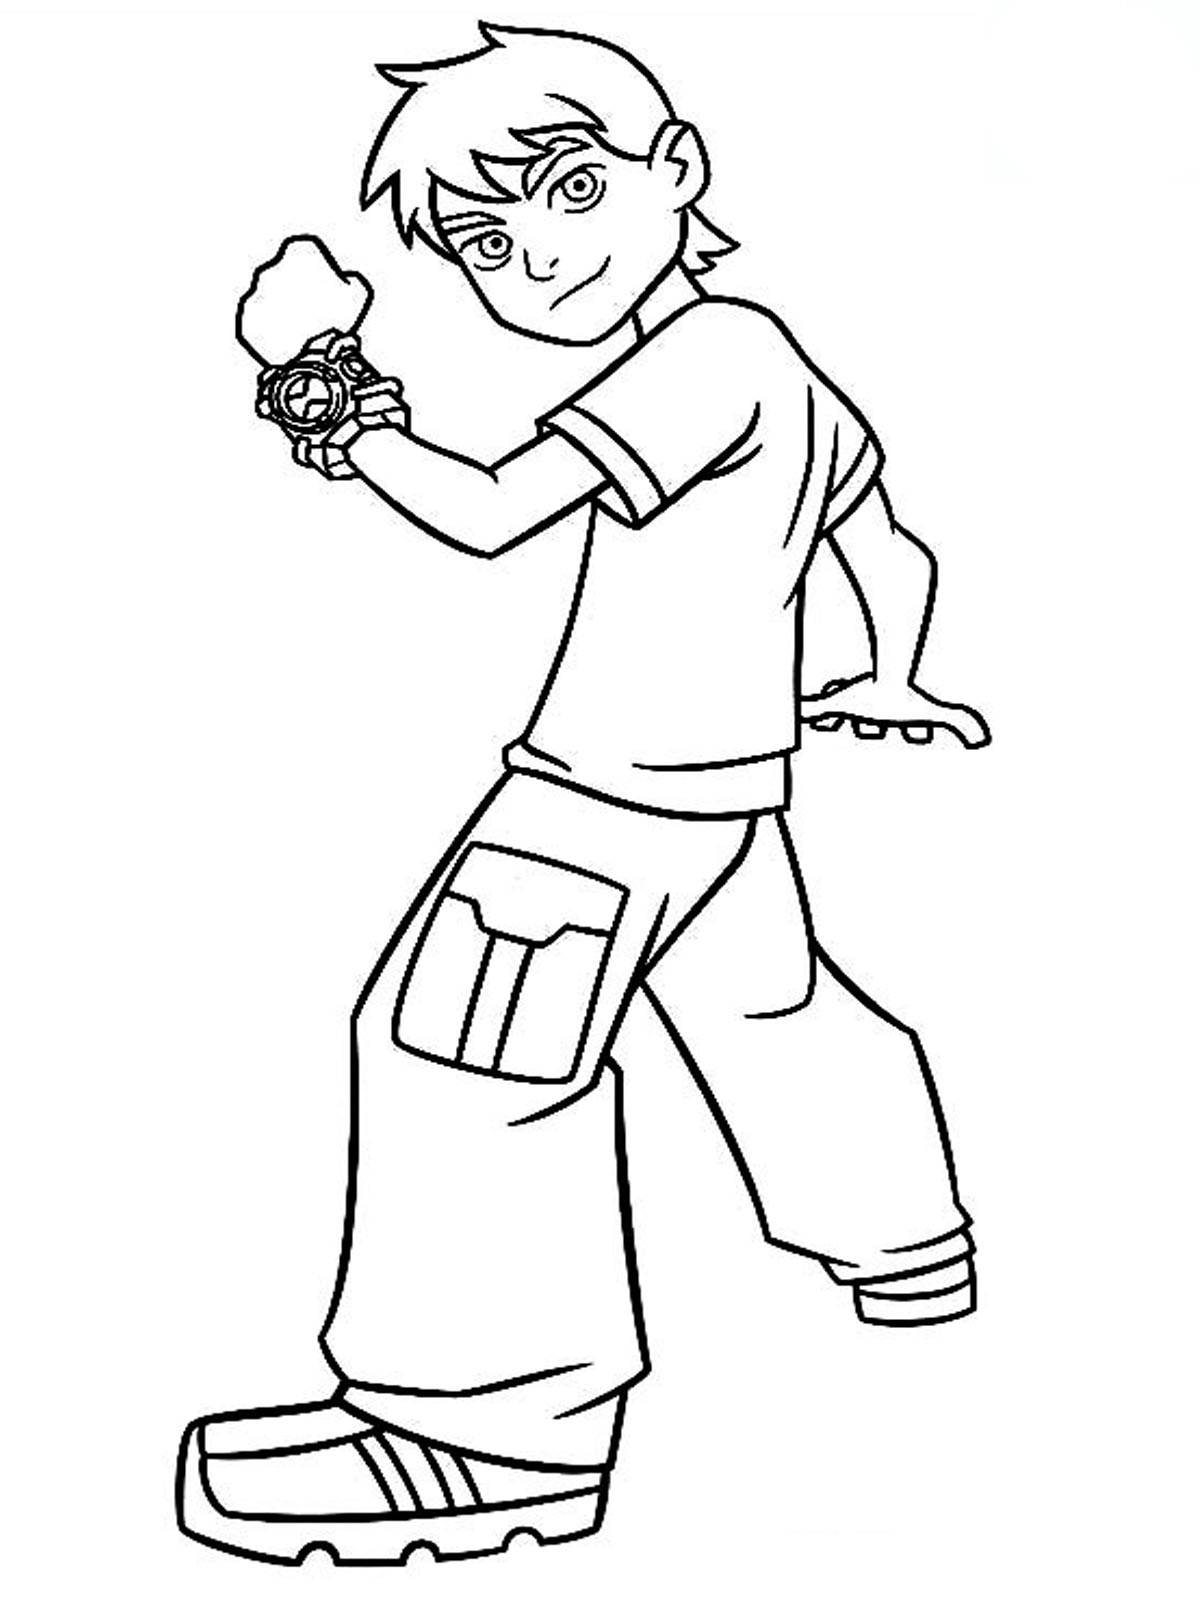 ten coloring page free printable ben 10 coloring pages for kids